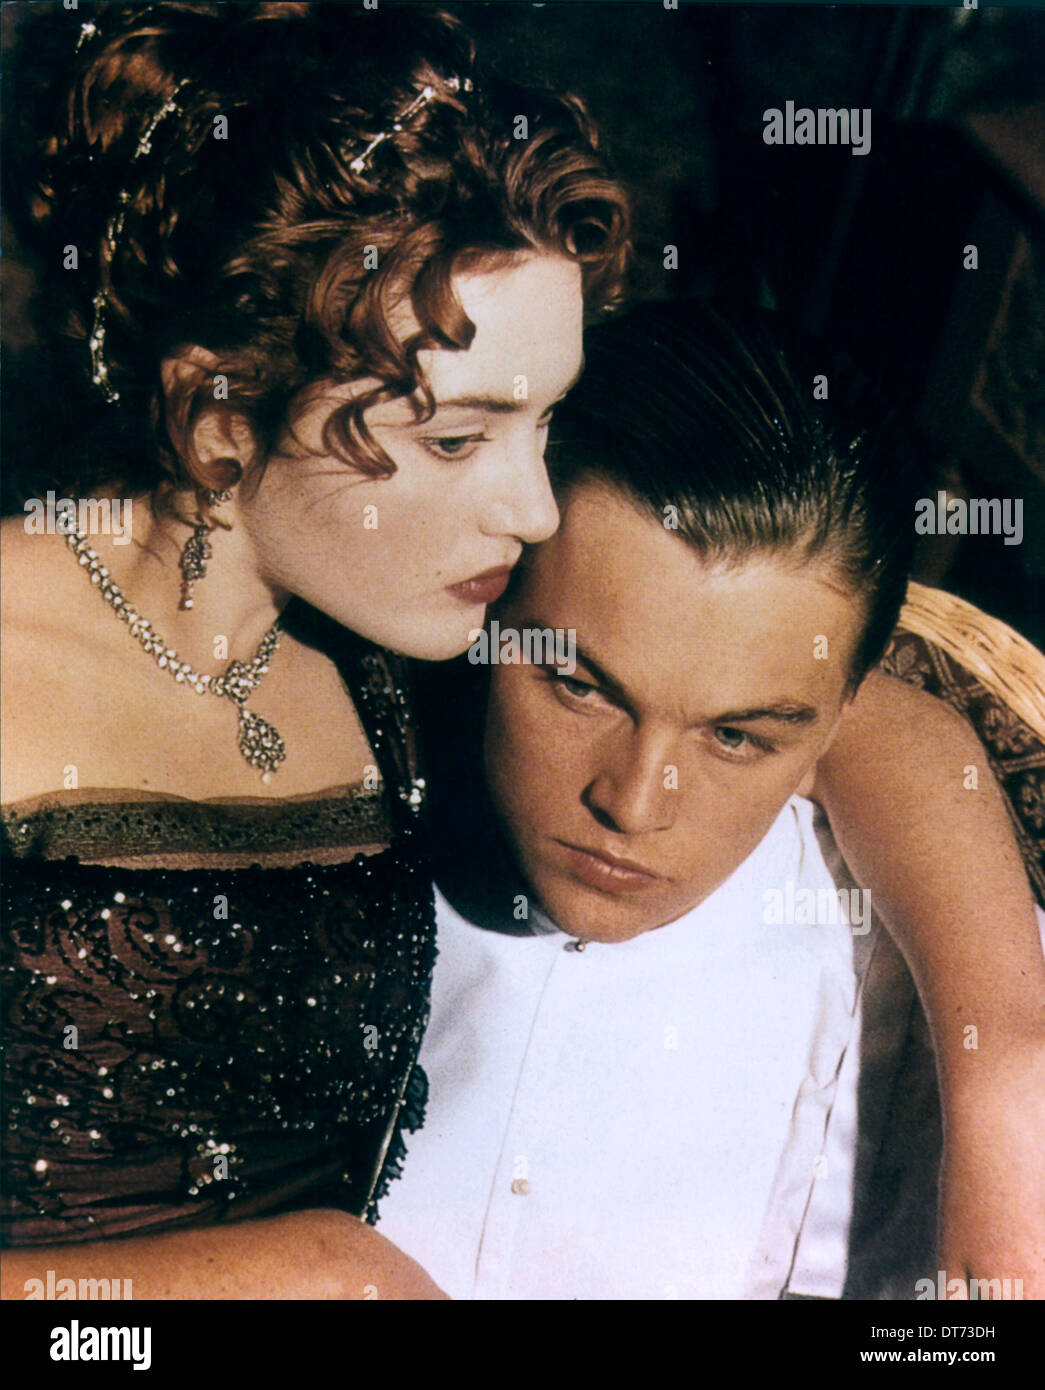 Kate Winslet Leonardo Dicaprio Titanic 1997 Stock Photo Alamy